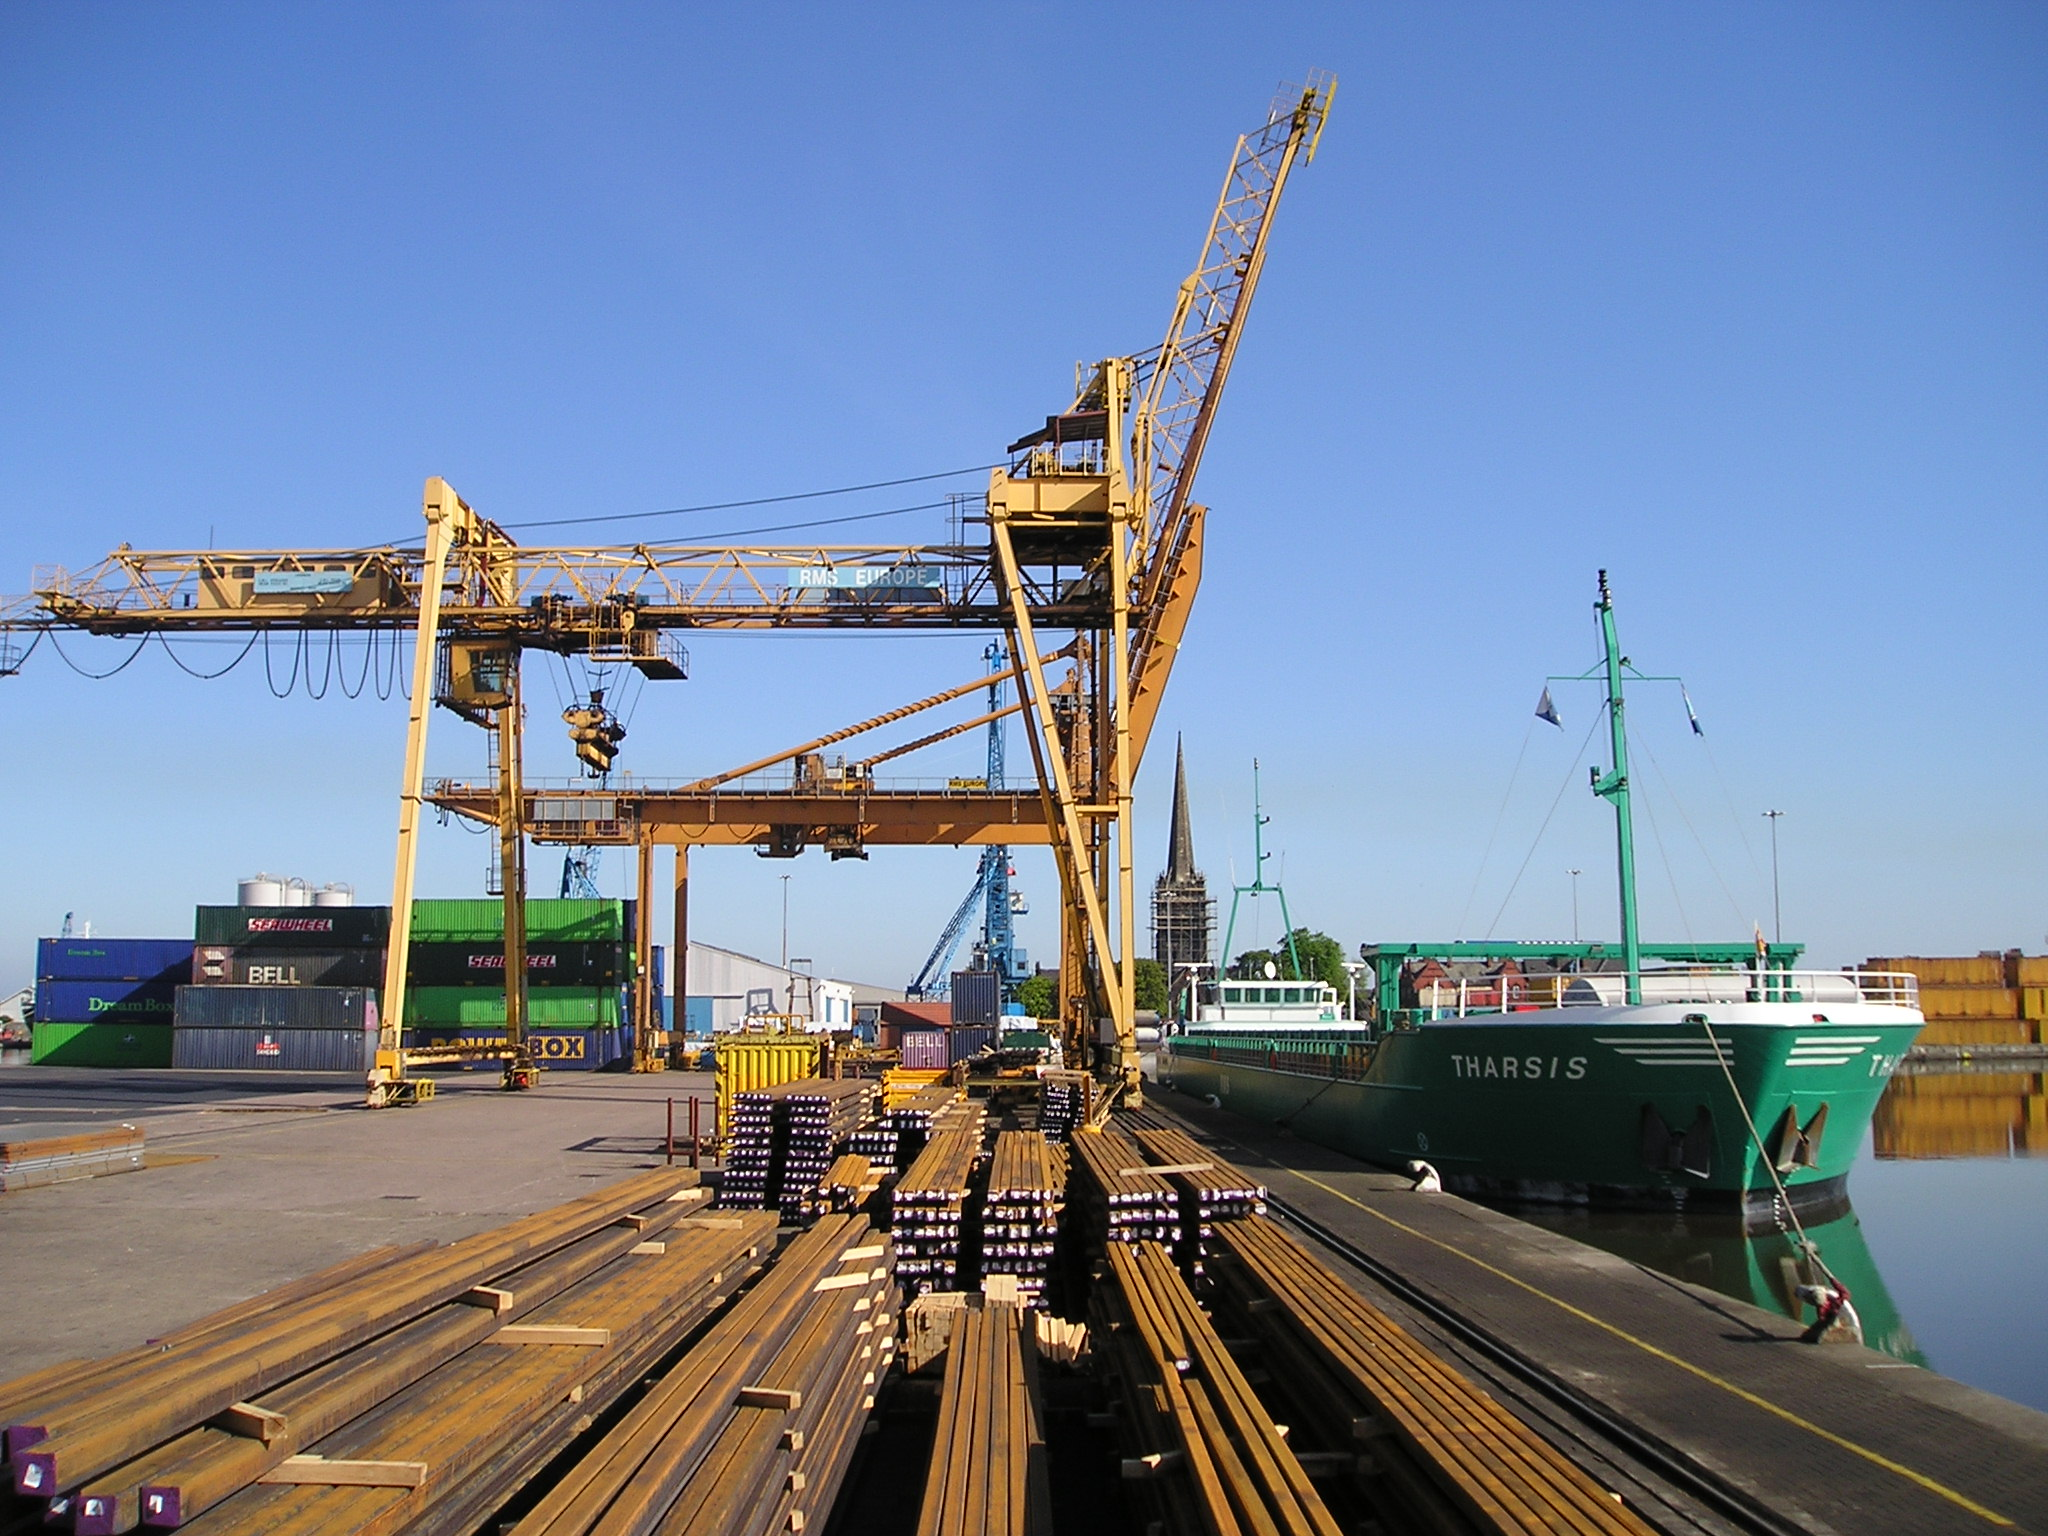 Under the gantry crane at Goole